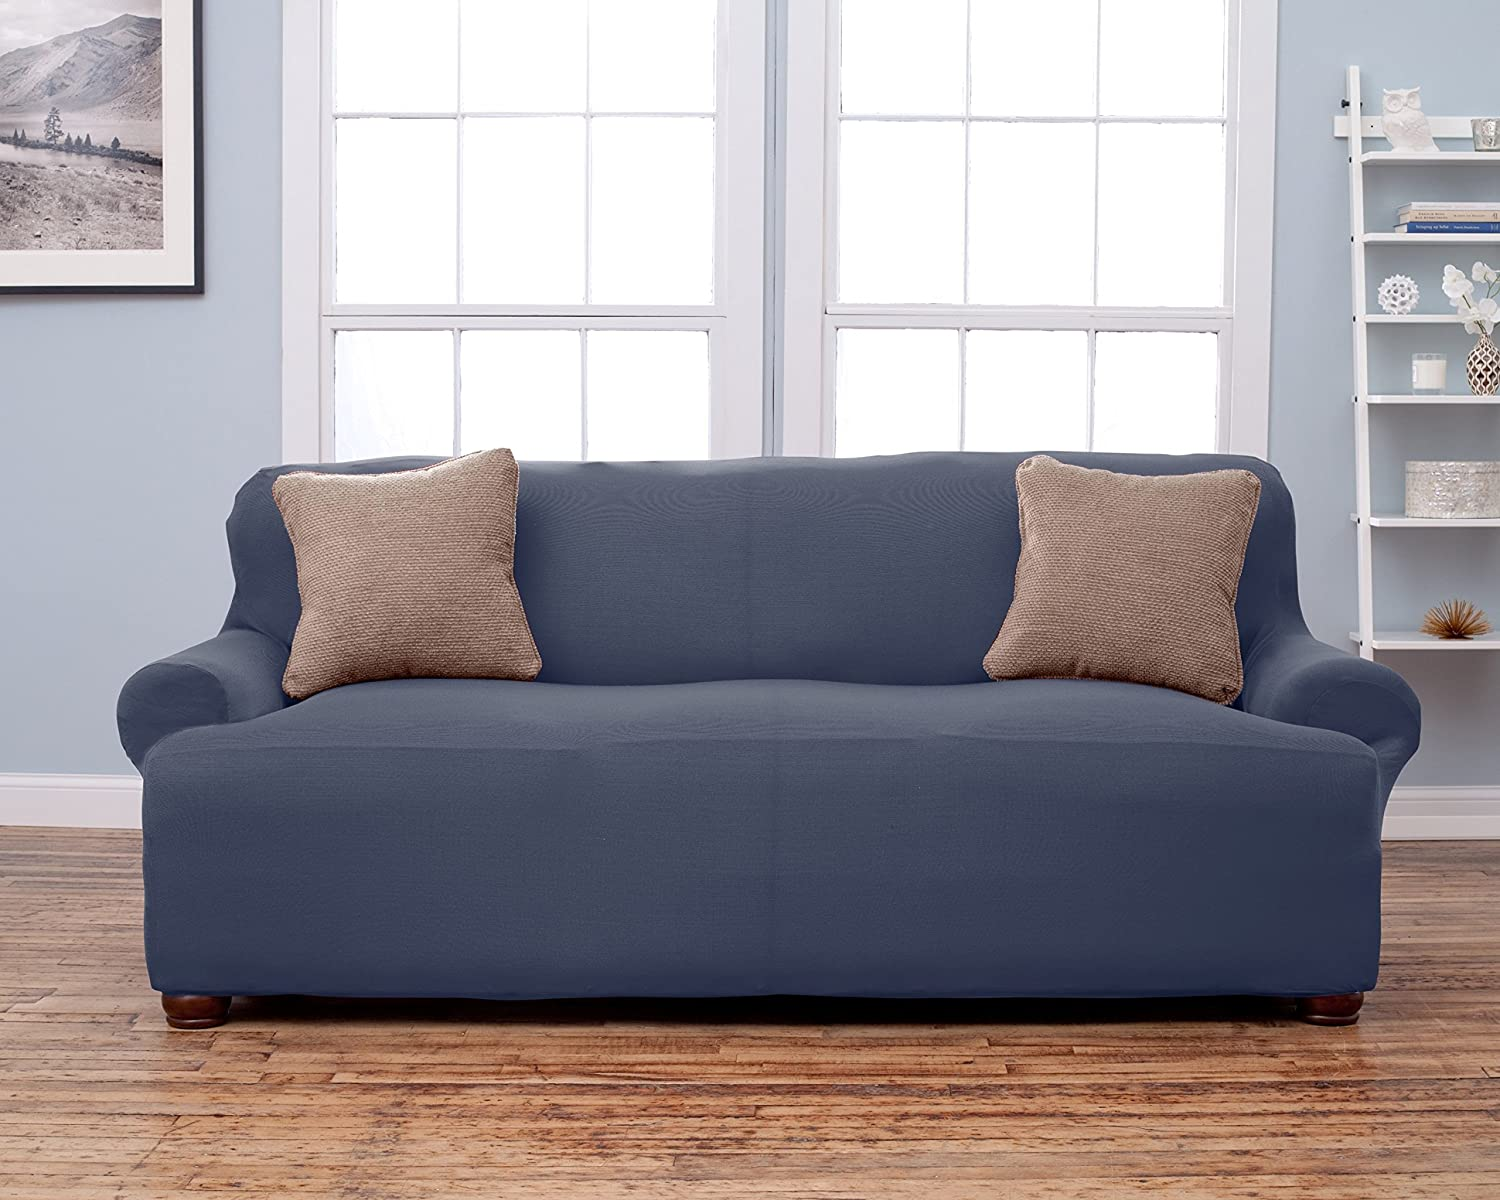 Lucia Collection Corduroy Strapless Slipcover. Form Fit, Slip Resistant, Stylish Furniture Shield / Protector Featuring Soft, Lightweight Fabric. By Home Fashion Designs. (Sofa, Grey)